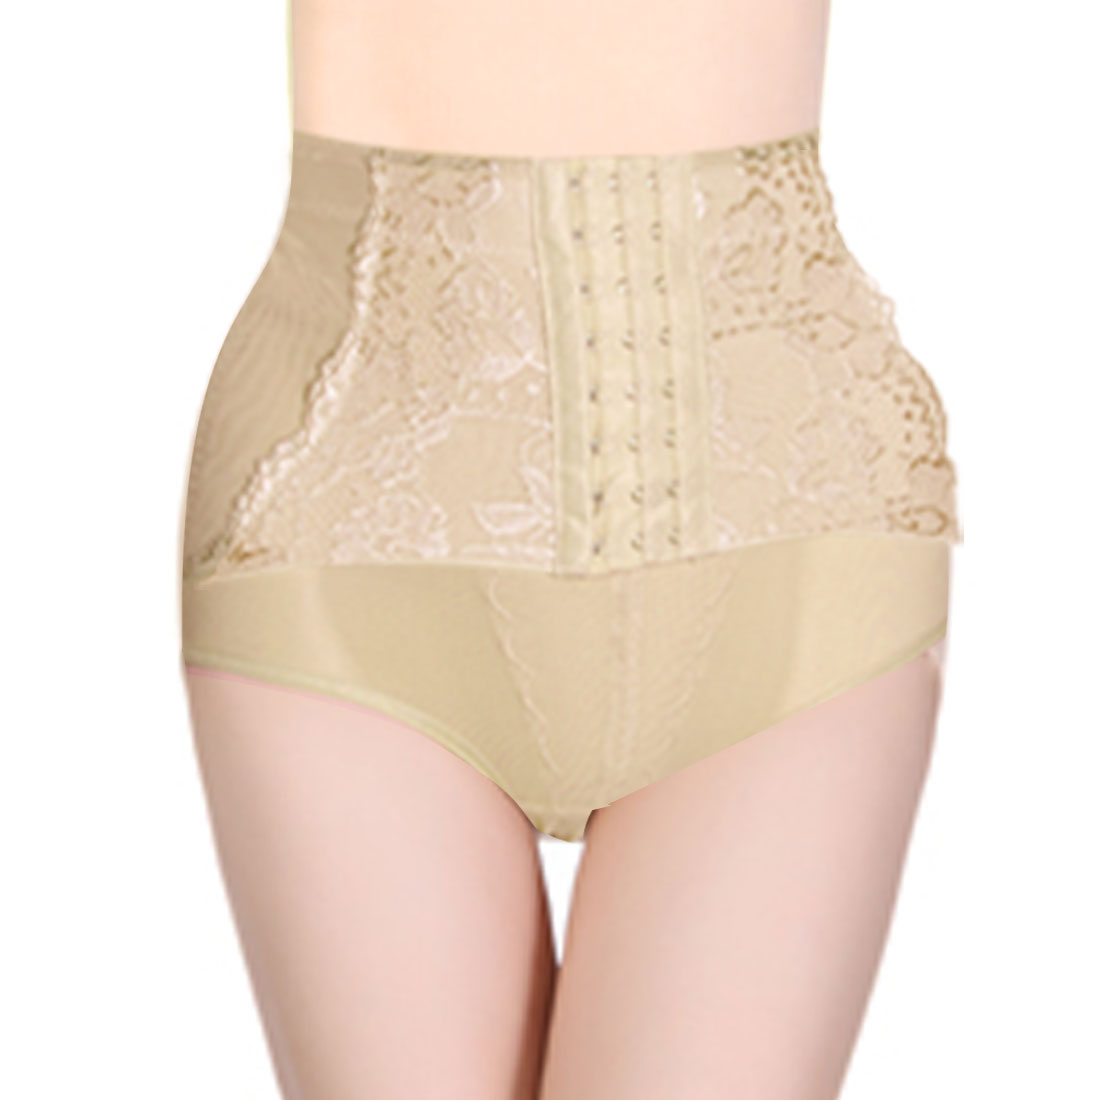 Lady Beige Eye Hook Closure Waist Trimmer Shapewear Brief L